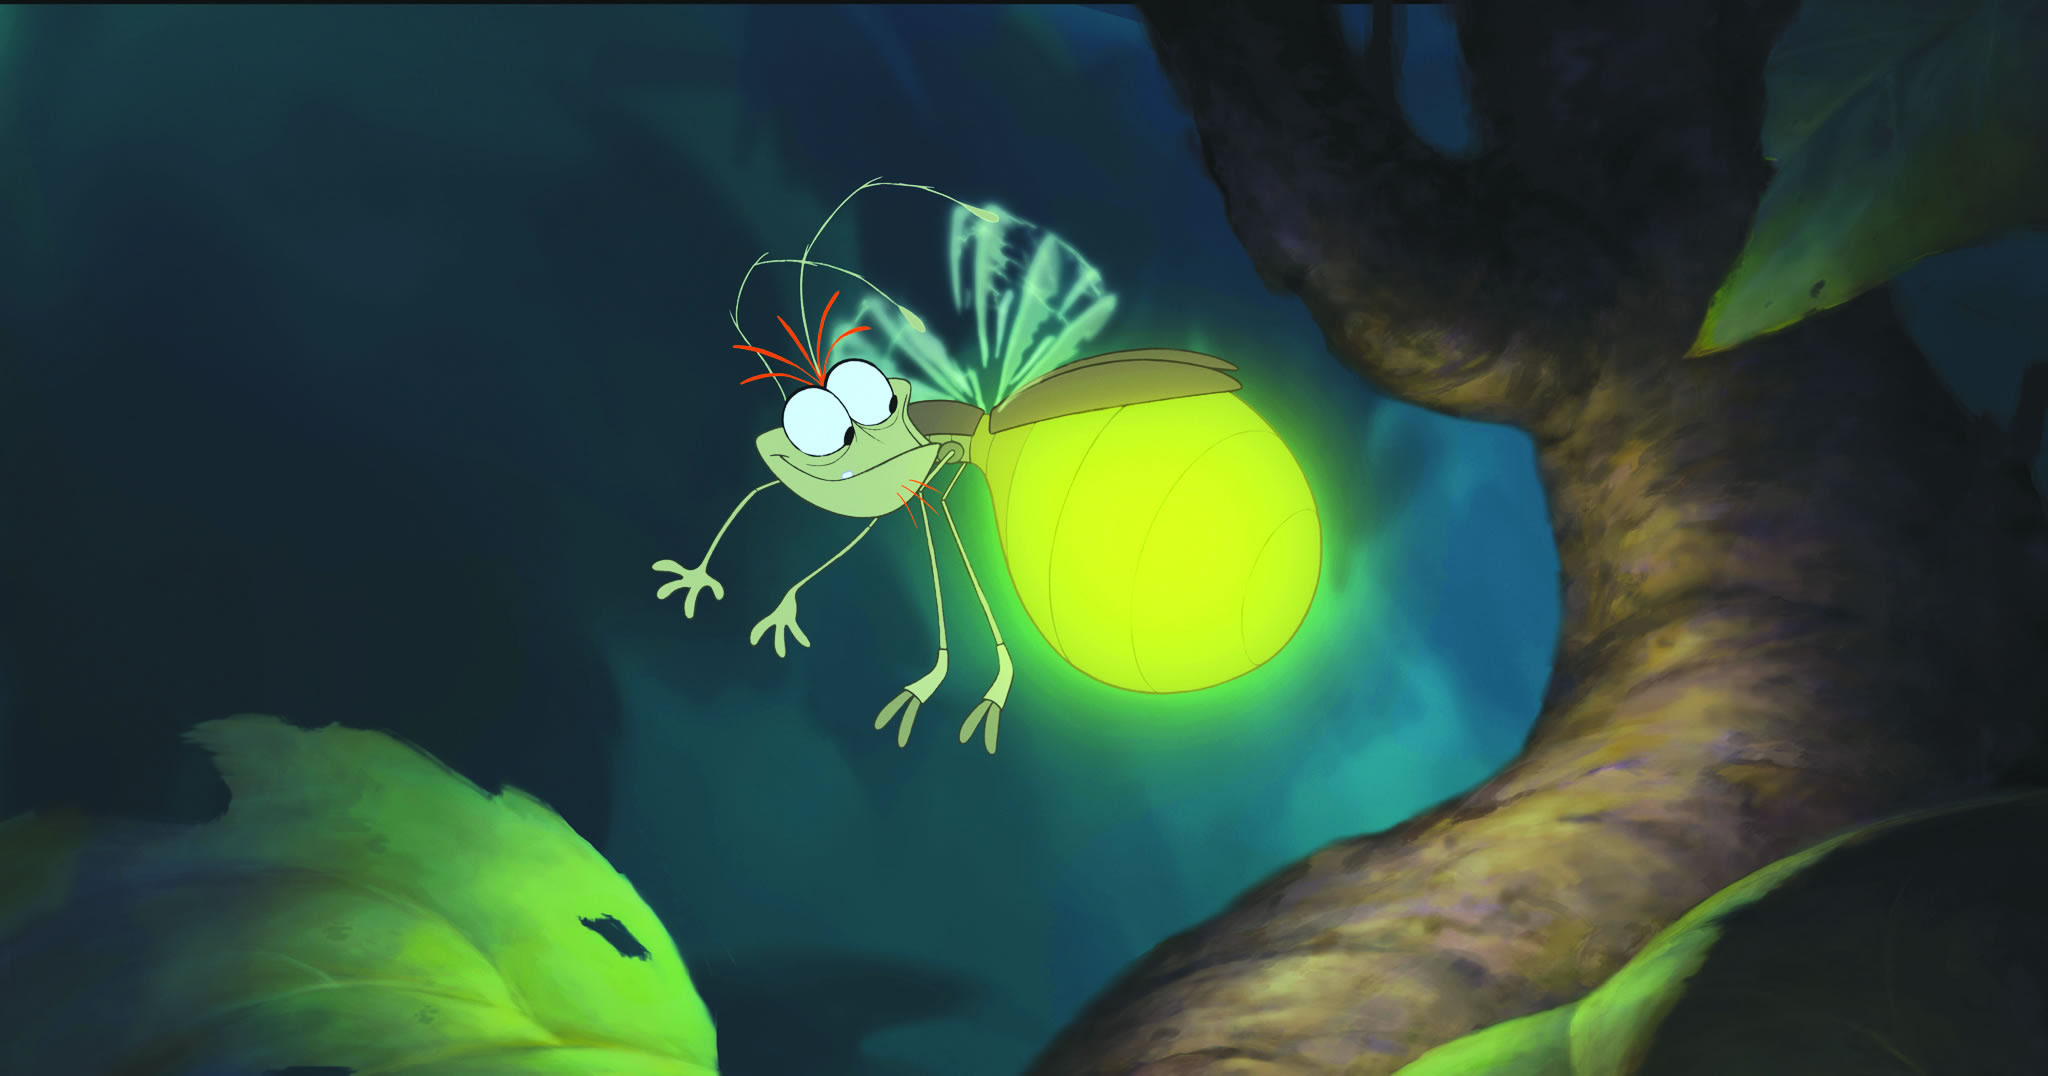 Ray The Lightning Bug From Disney S Princess And The Frog Desktop